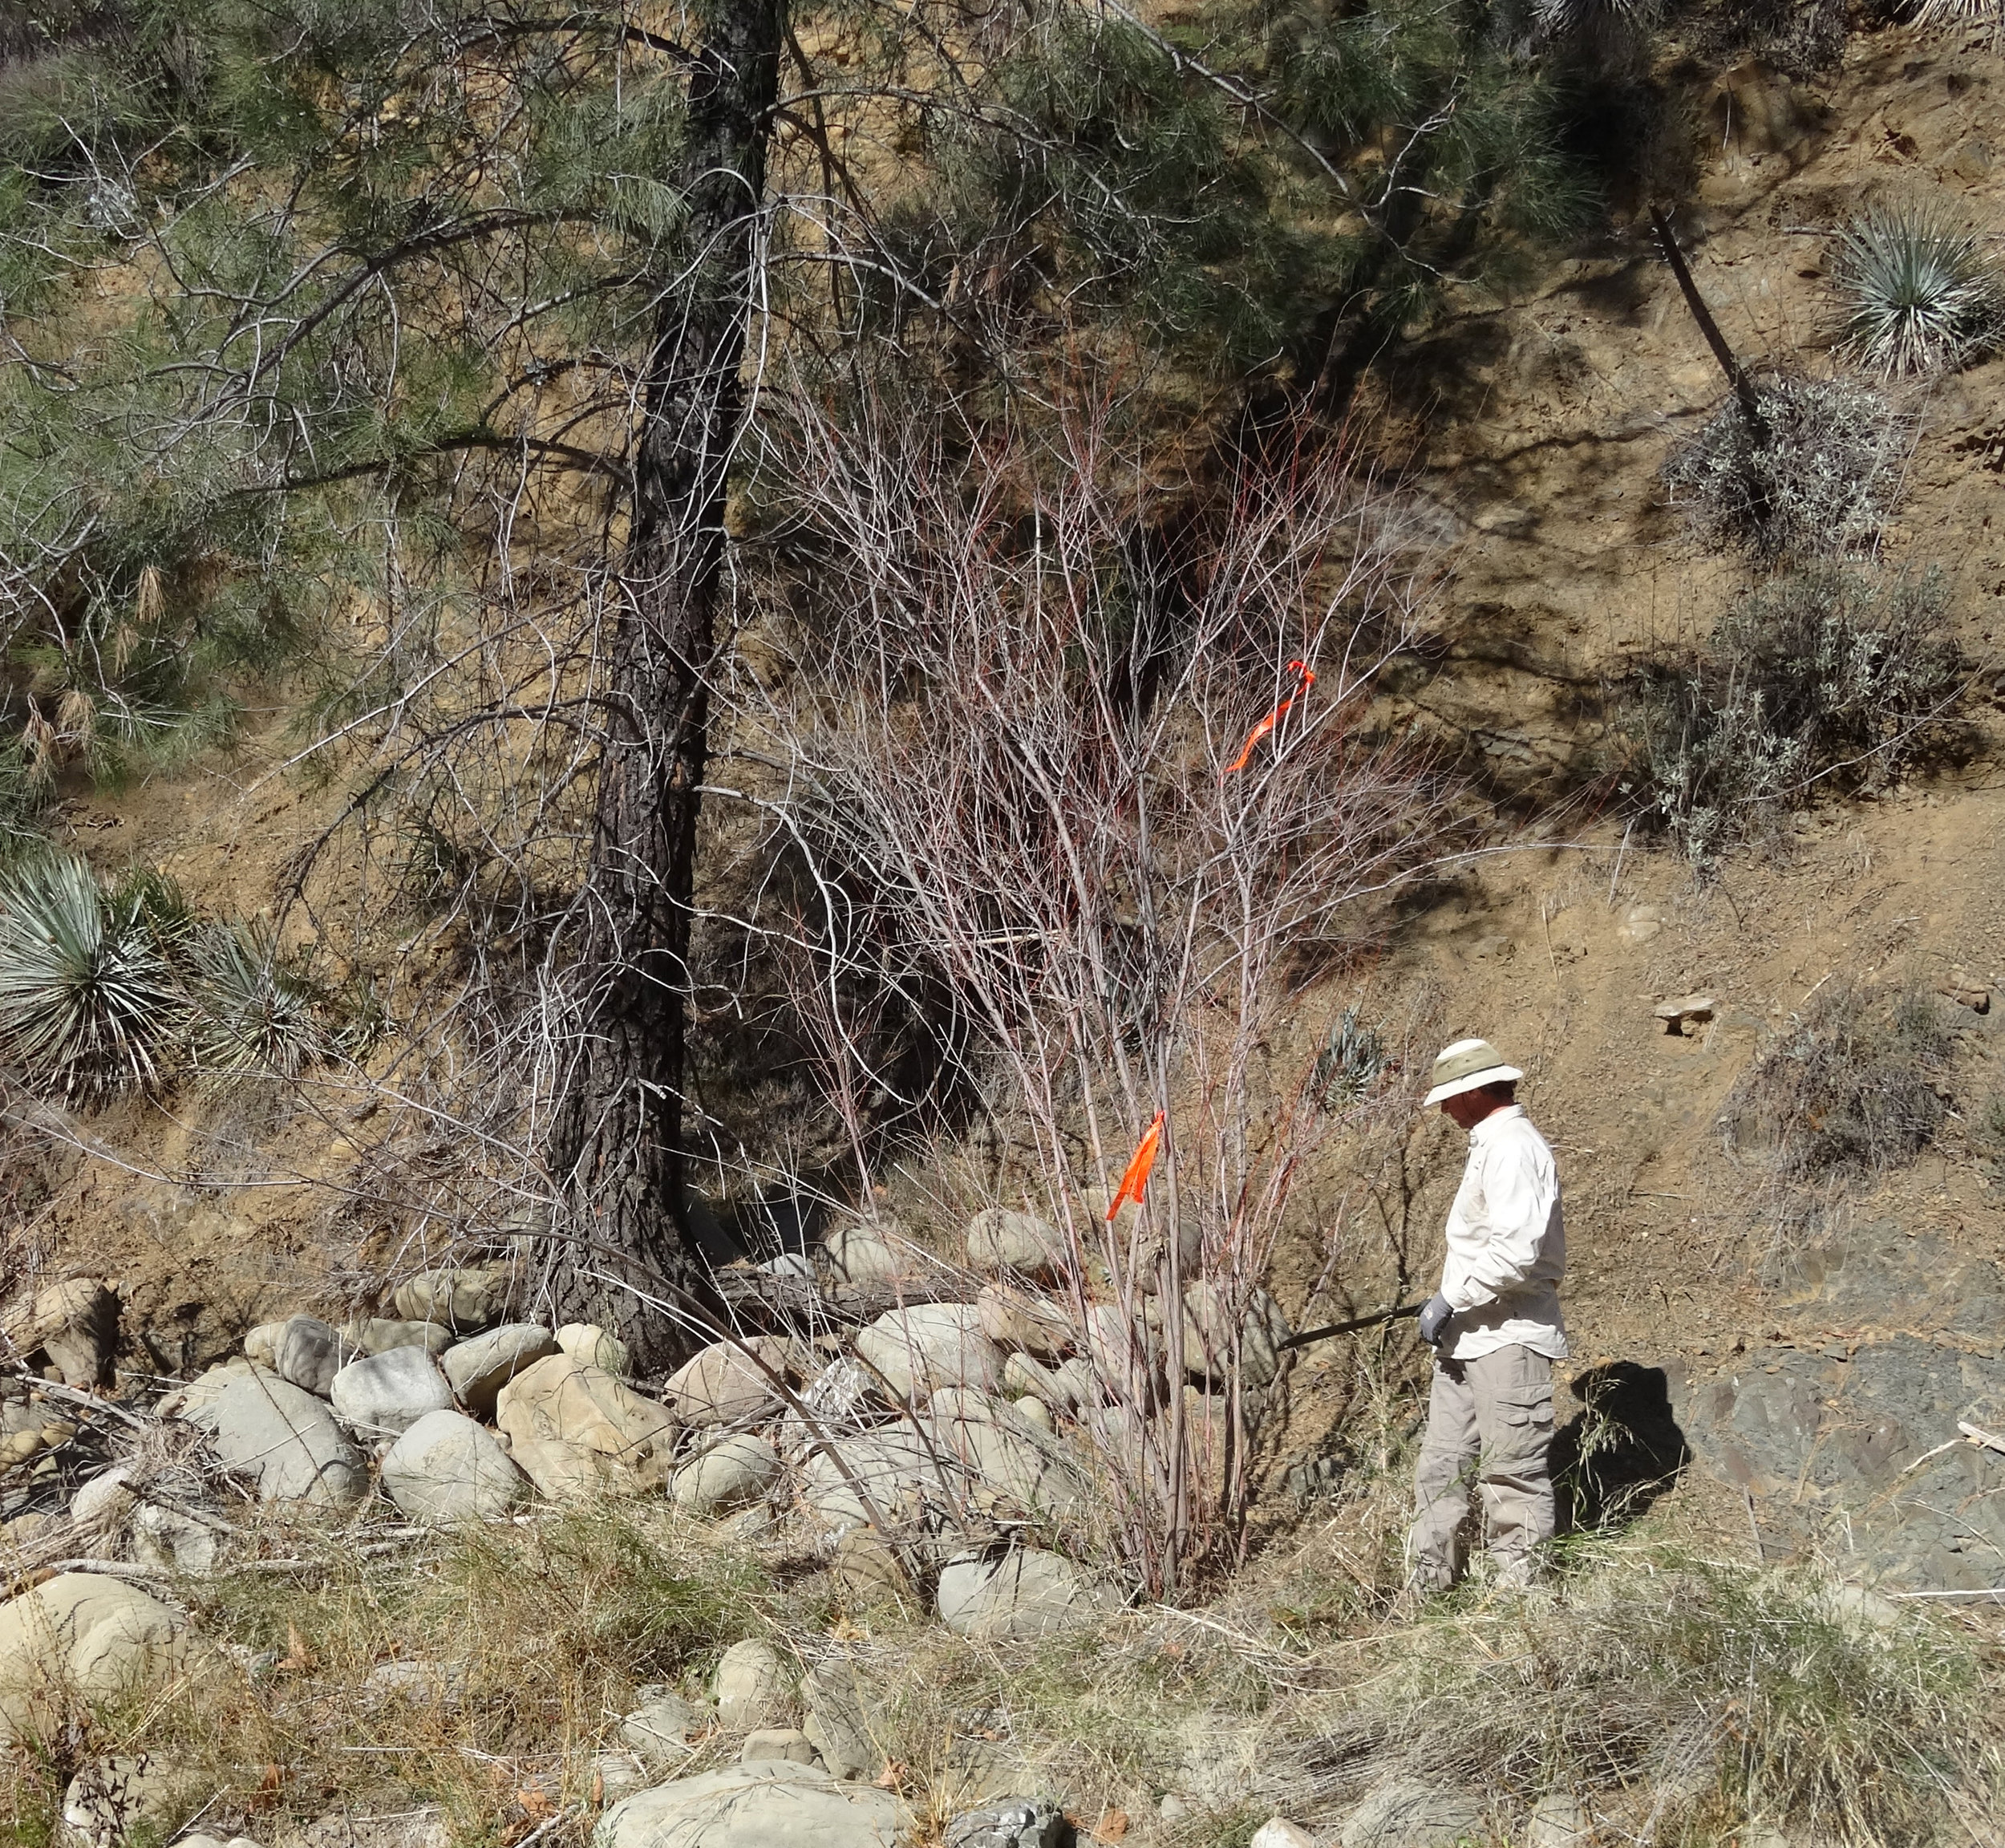 Adult tamarisk with a person for scale.